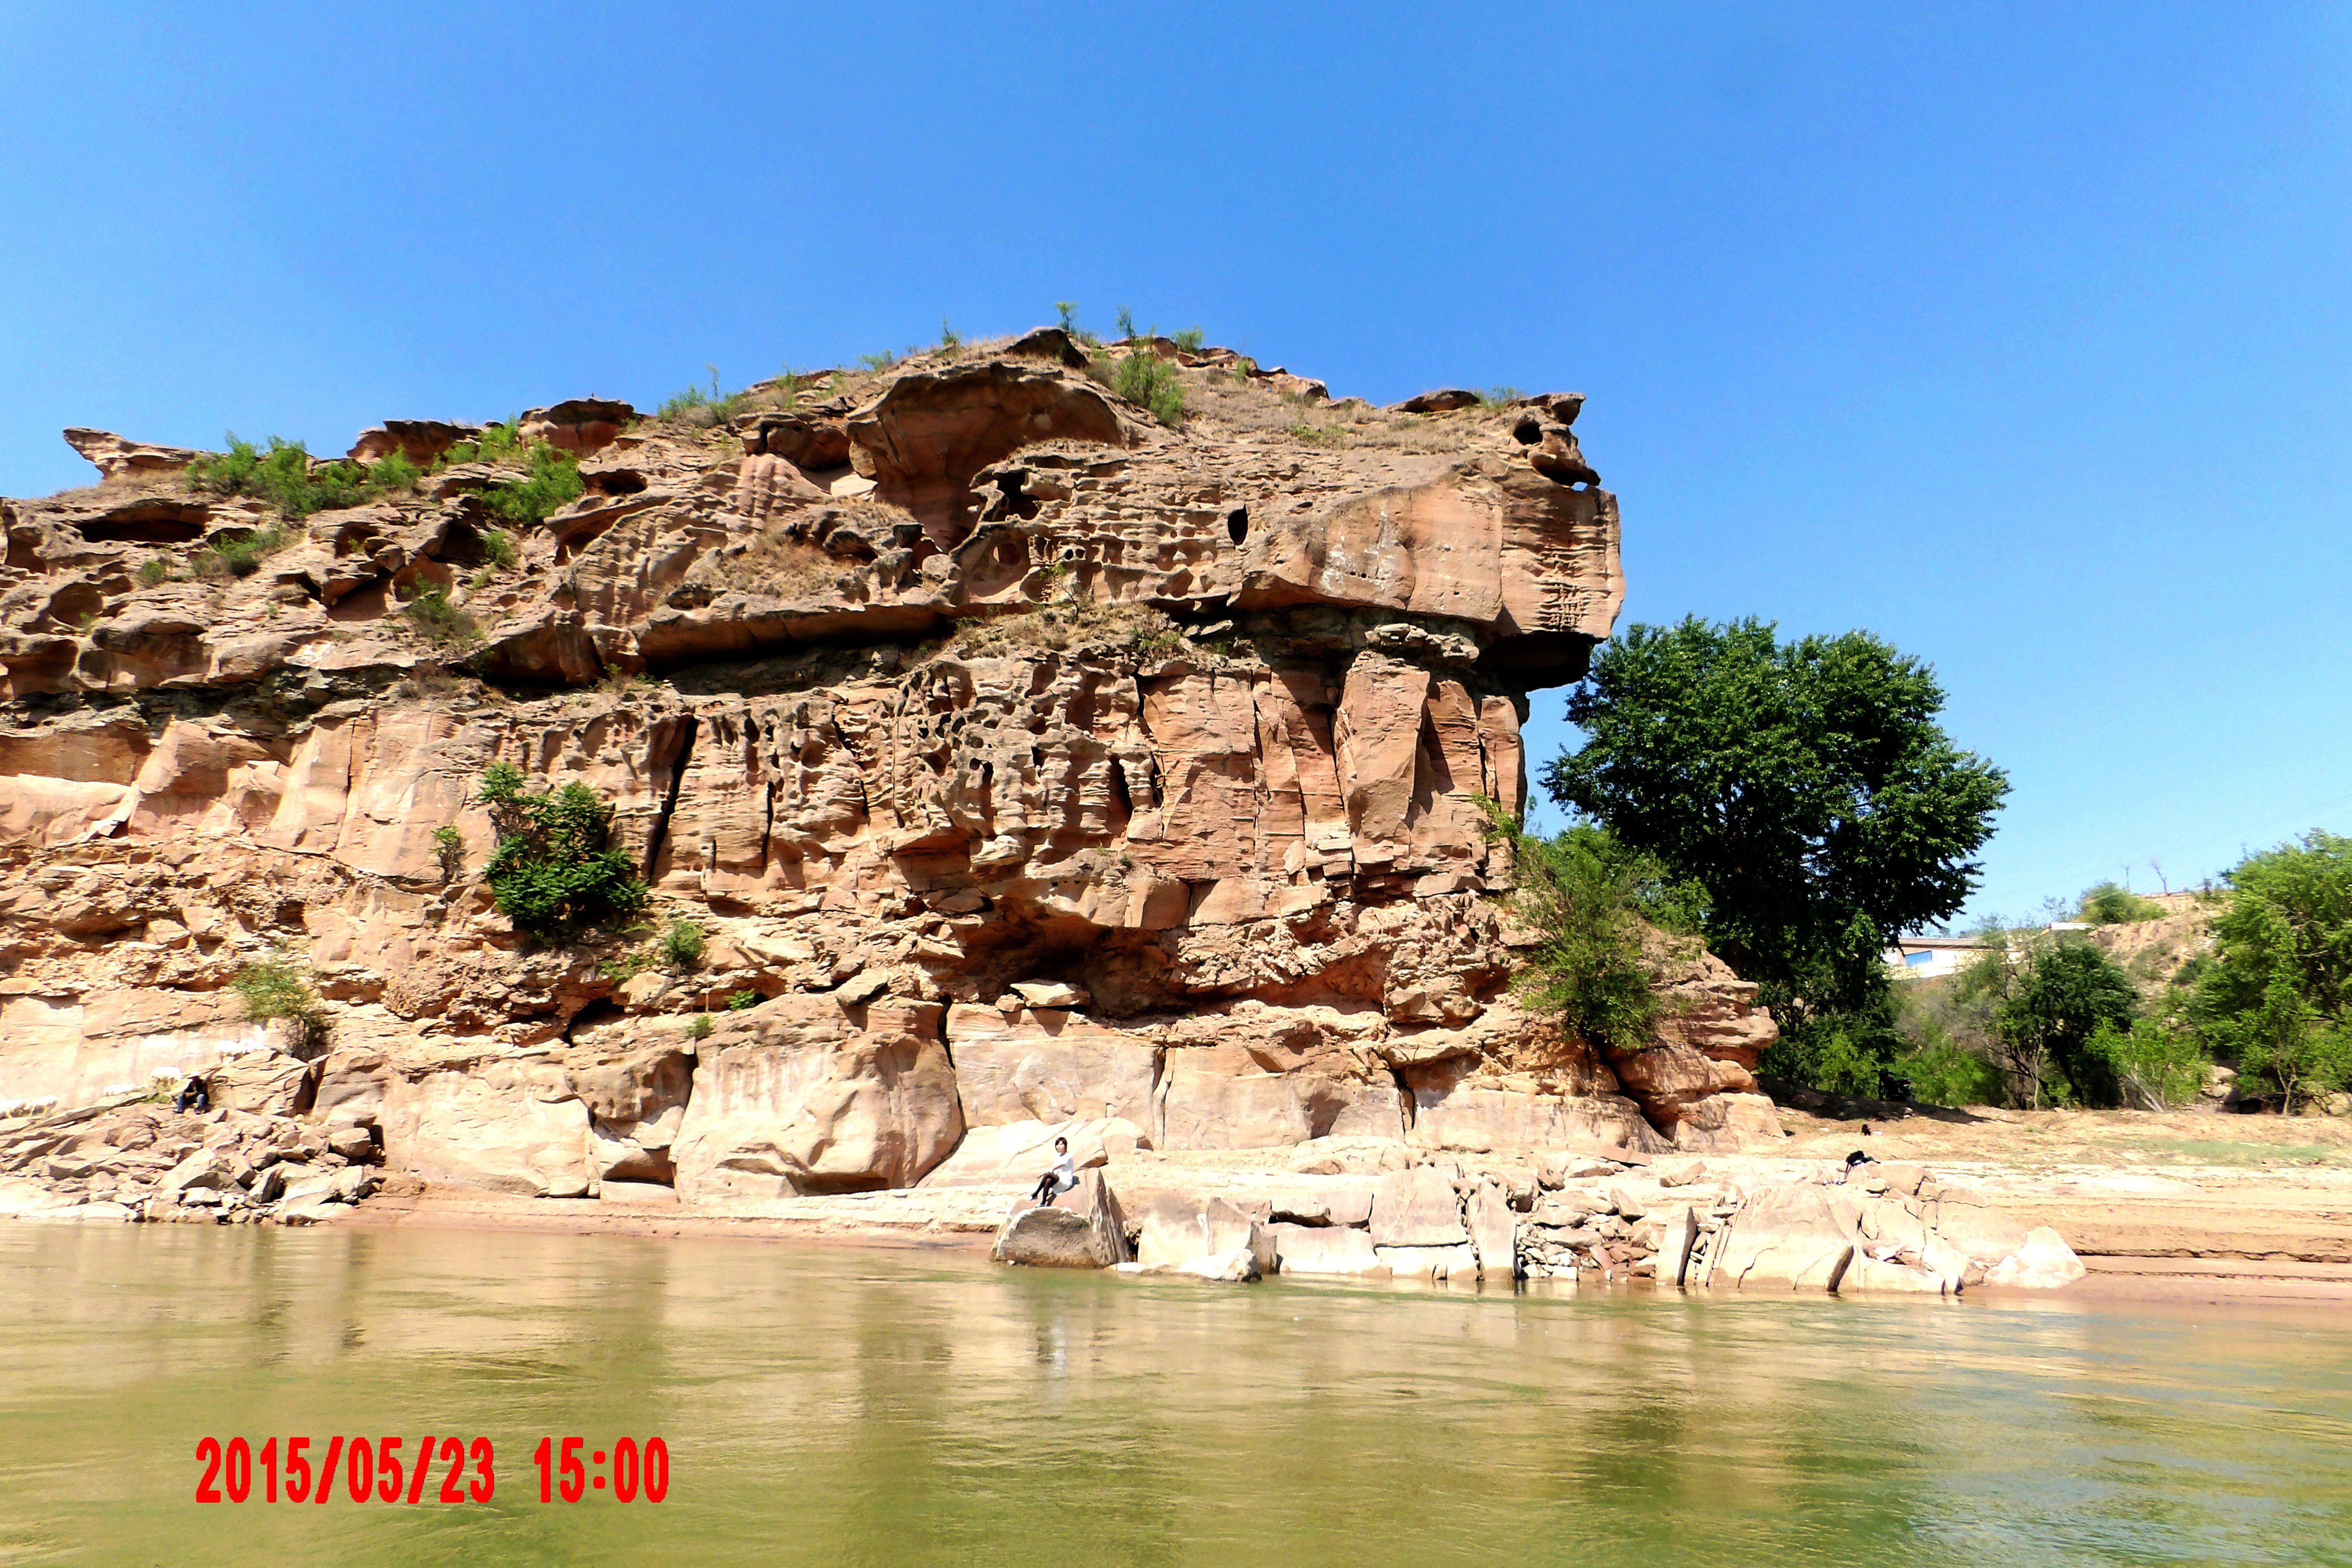 Yellow River Gallery (Yellow River Baili Water Erosion Relief)